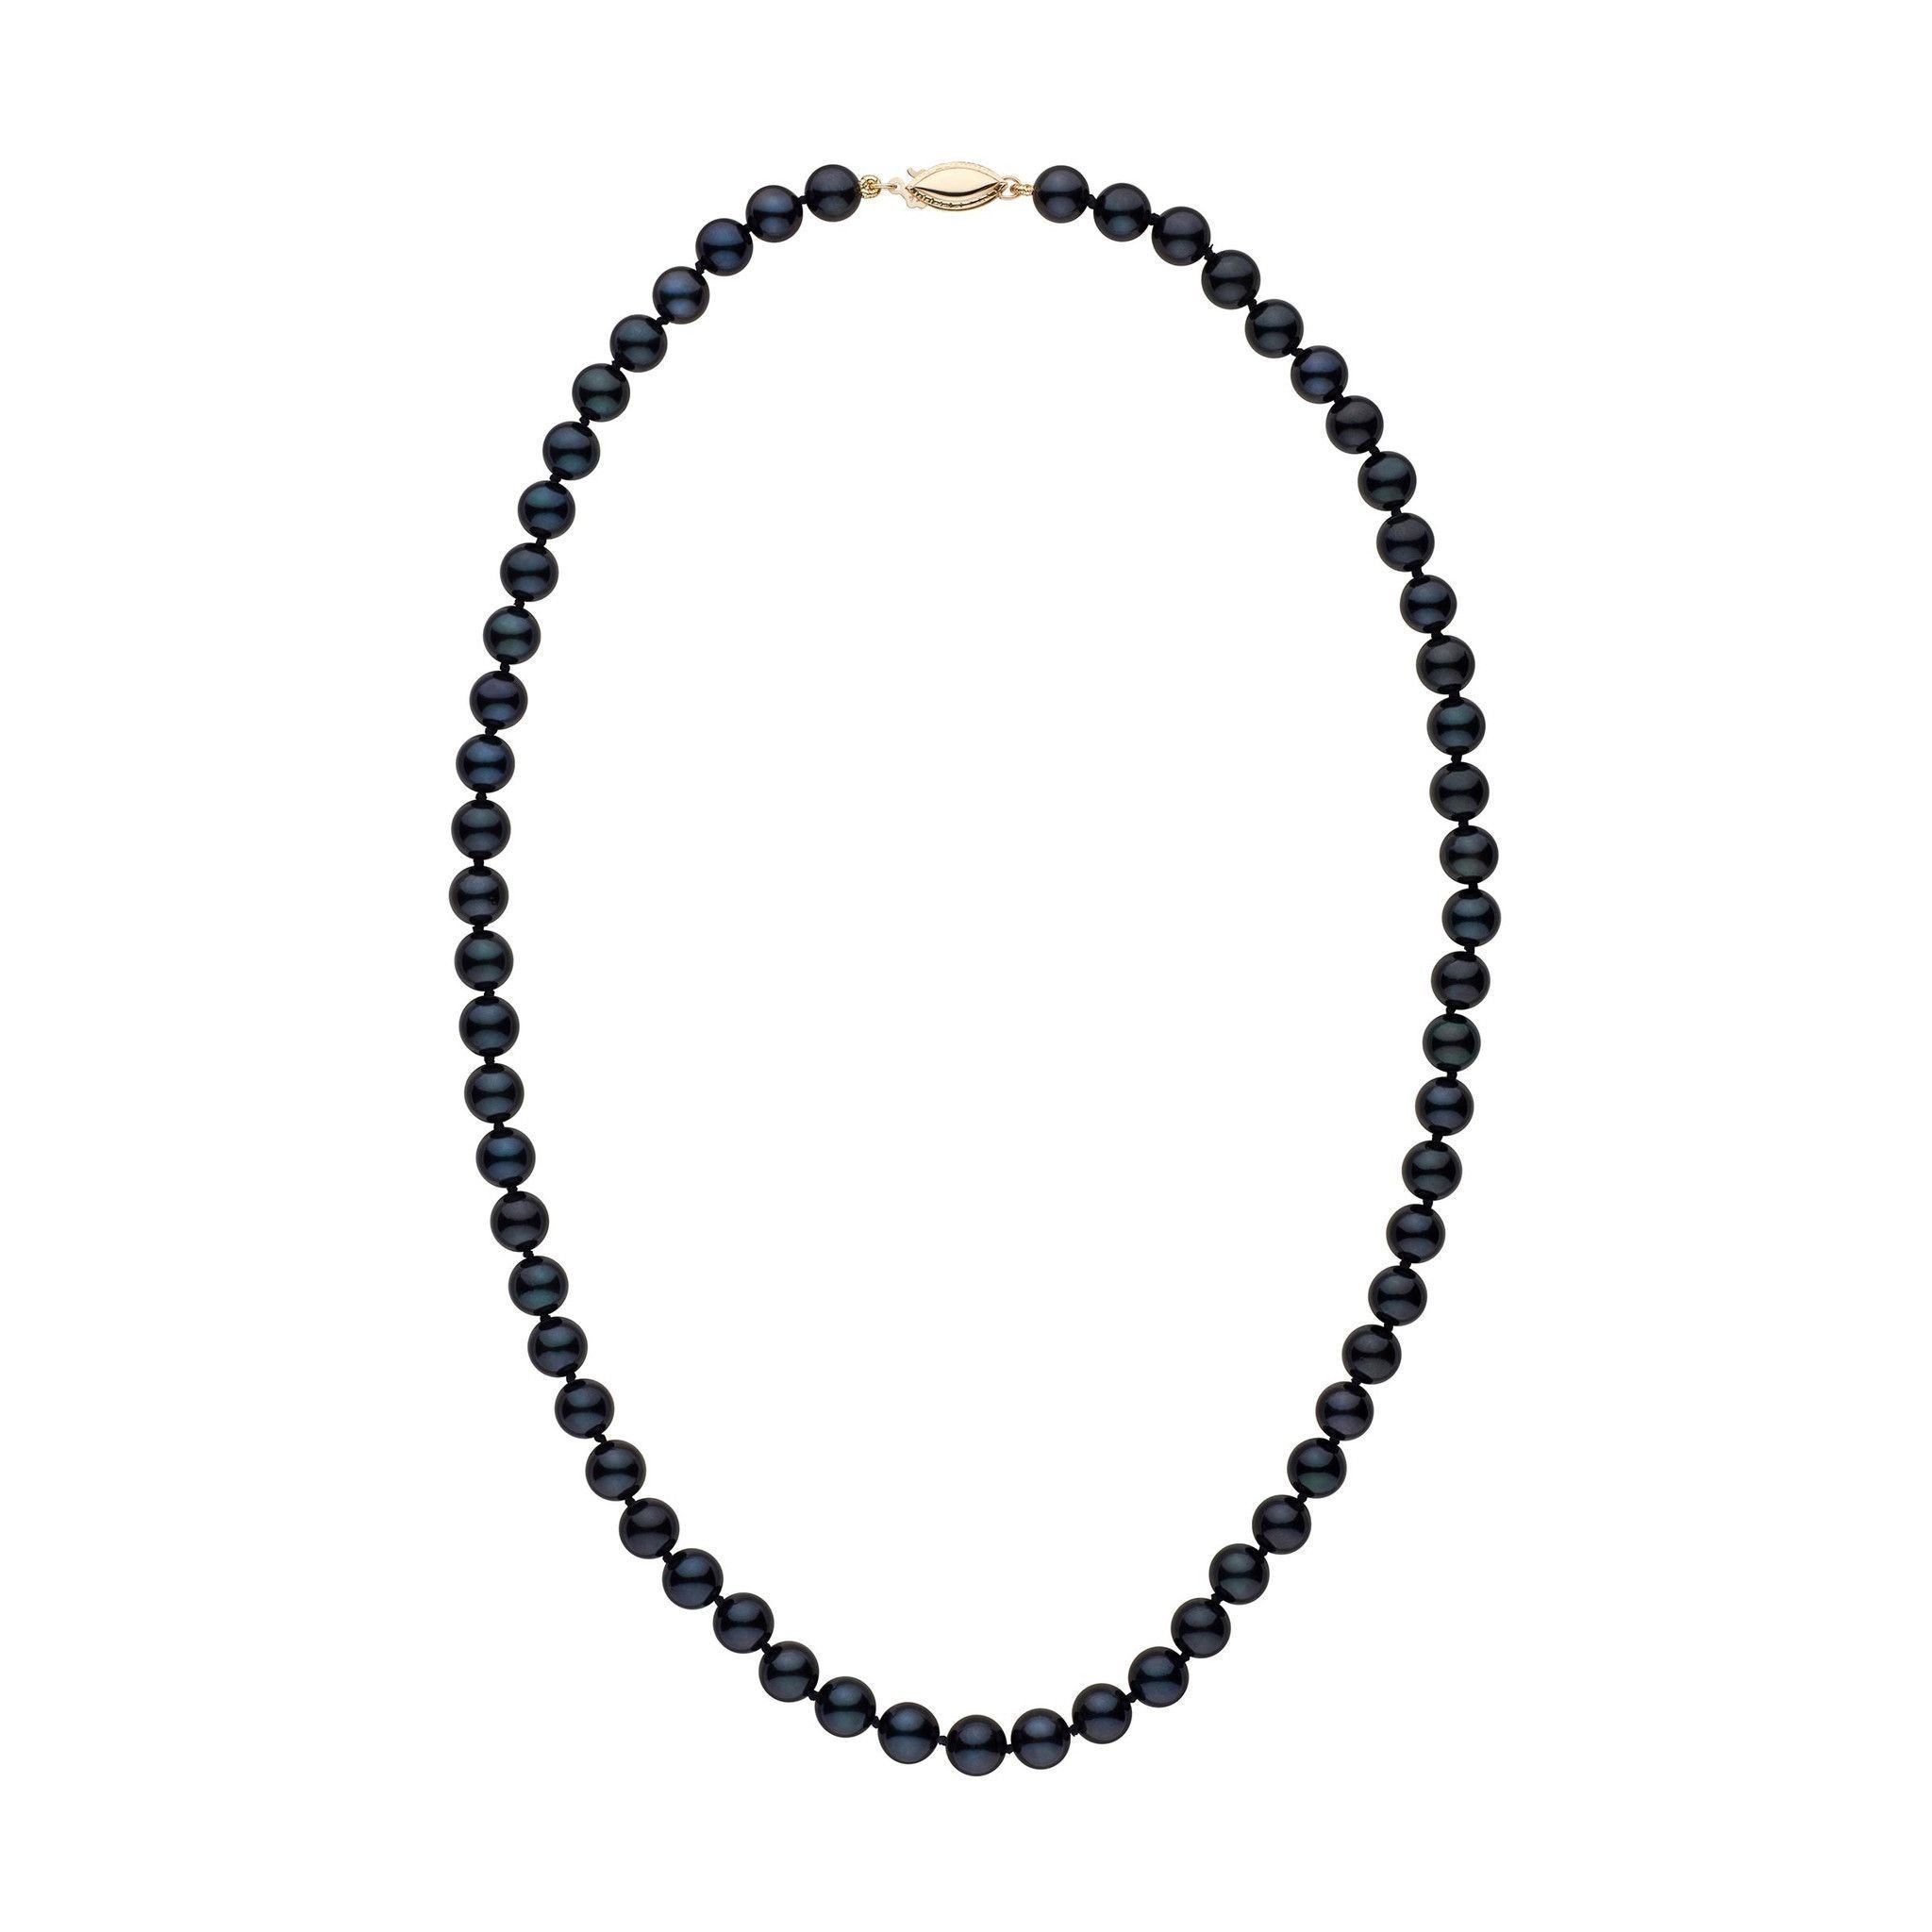 6.5-7.0 mm 20 inch AA+ Black Akoya Pearl Necklace